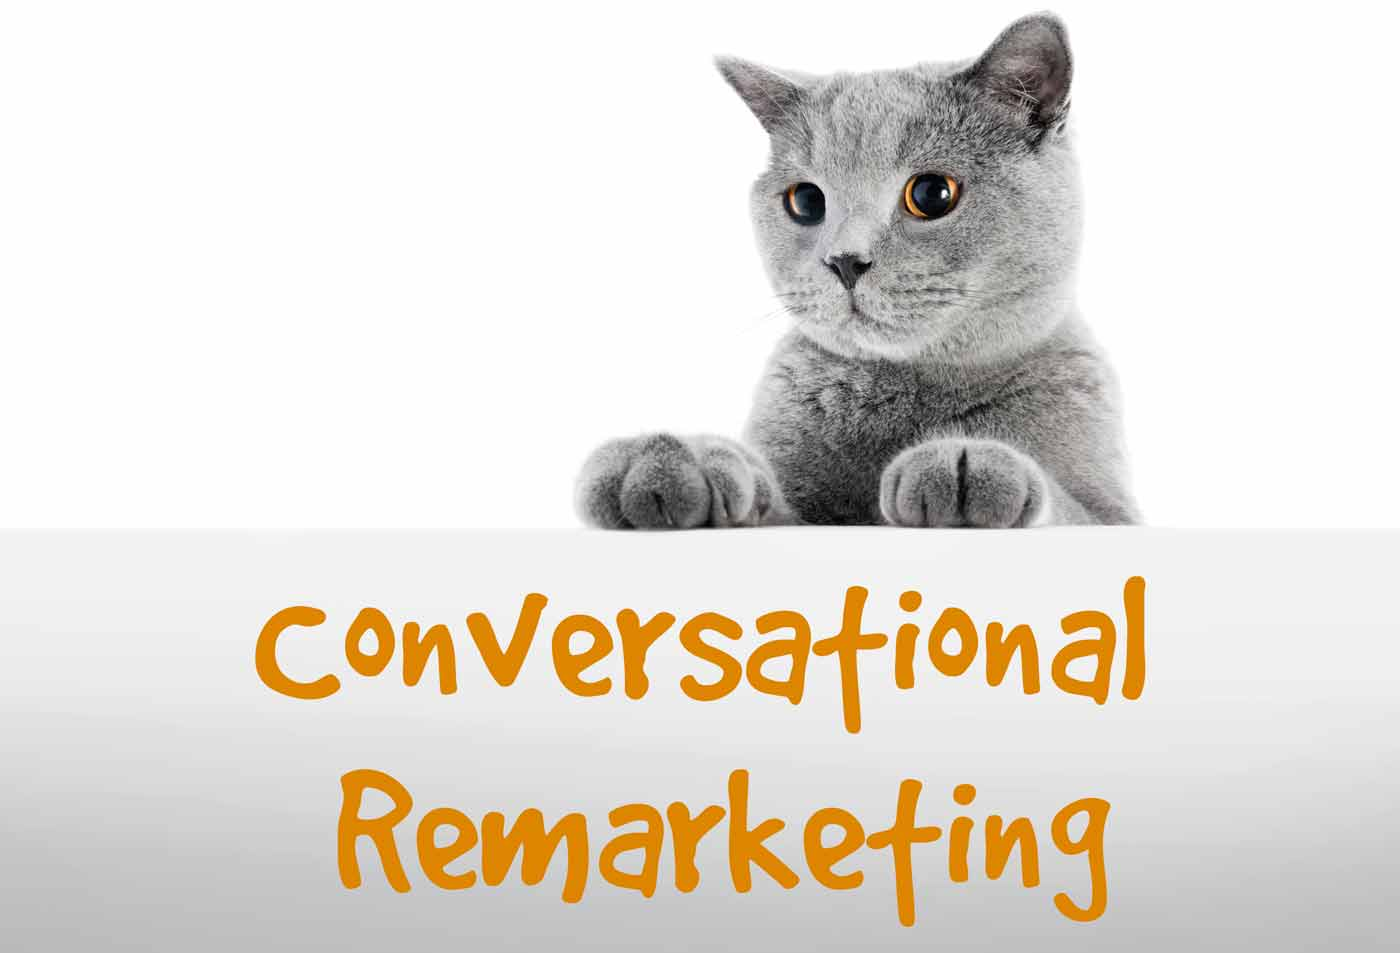 Conversational Remarketing